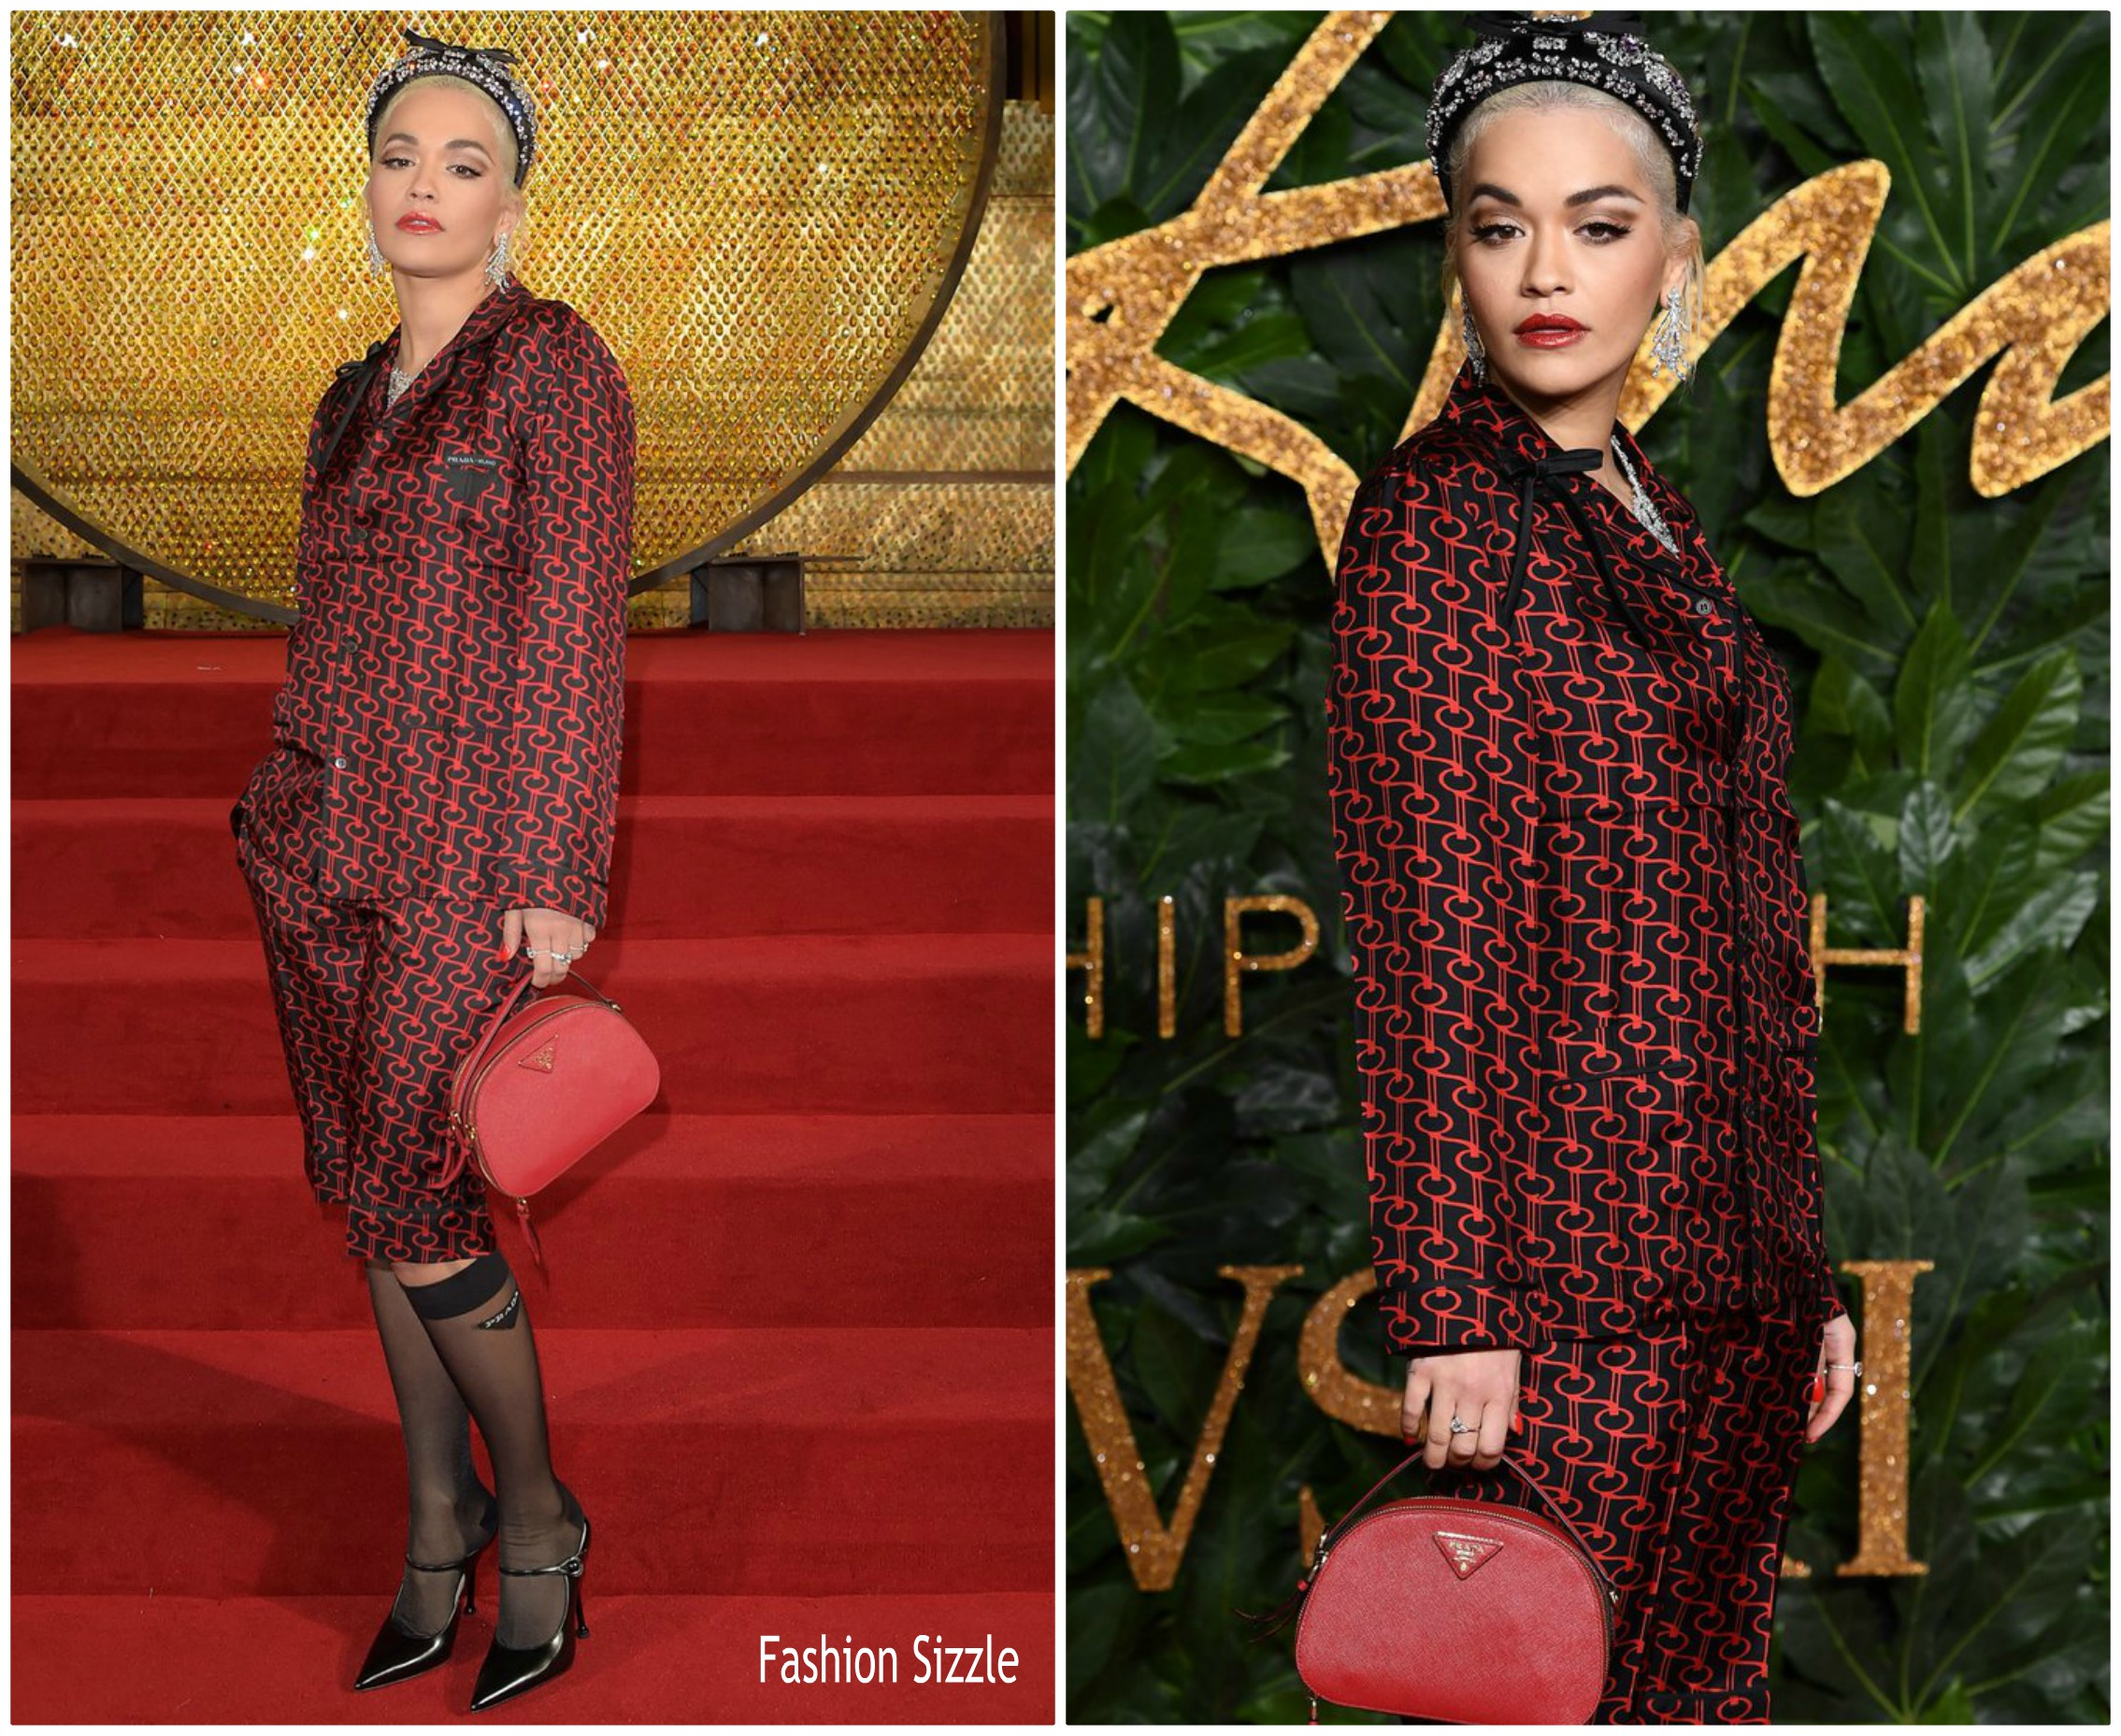 rita-ora-in-prada-fashionawards-2018